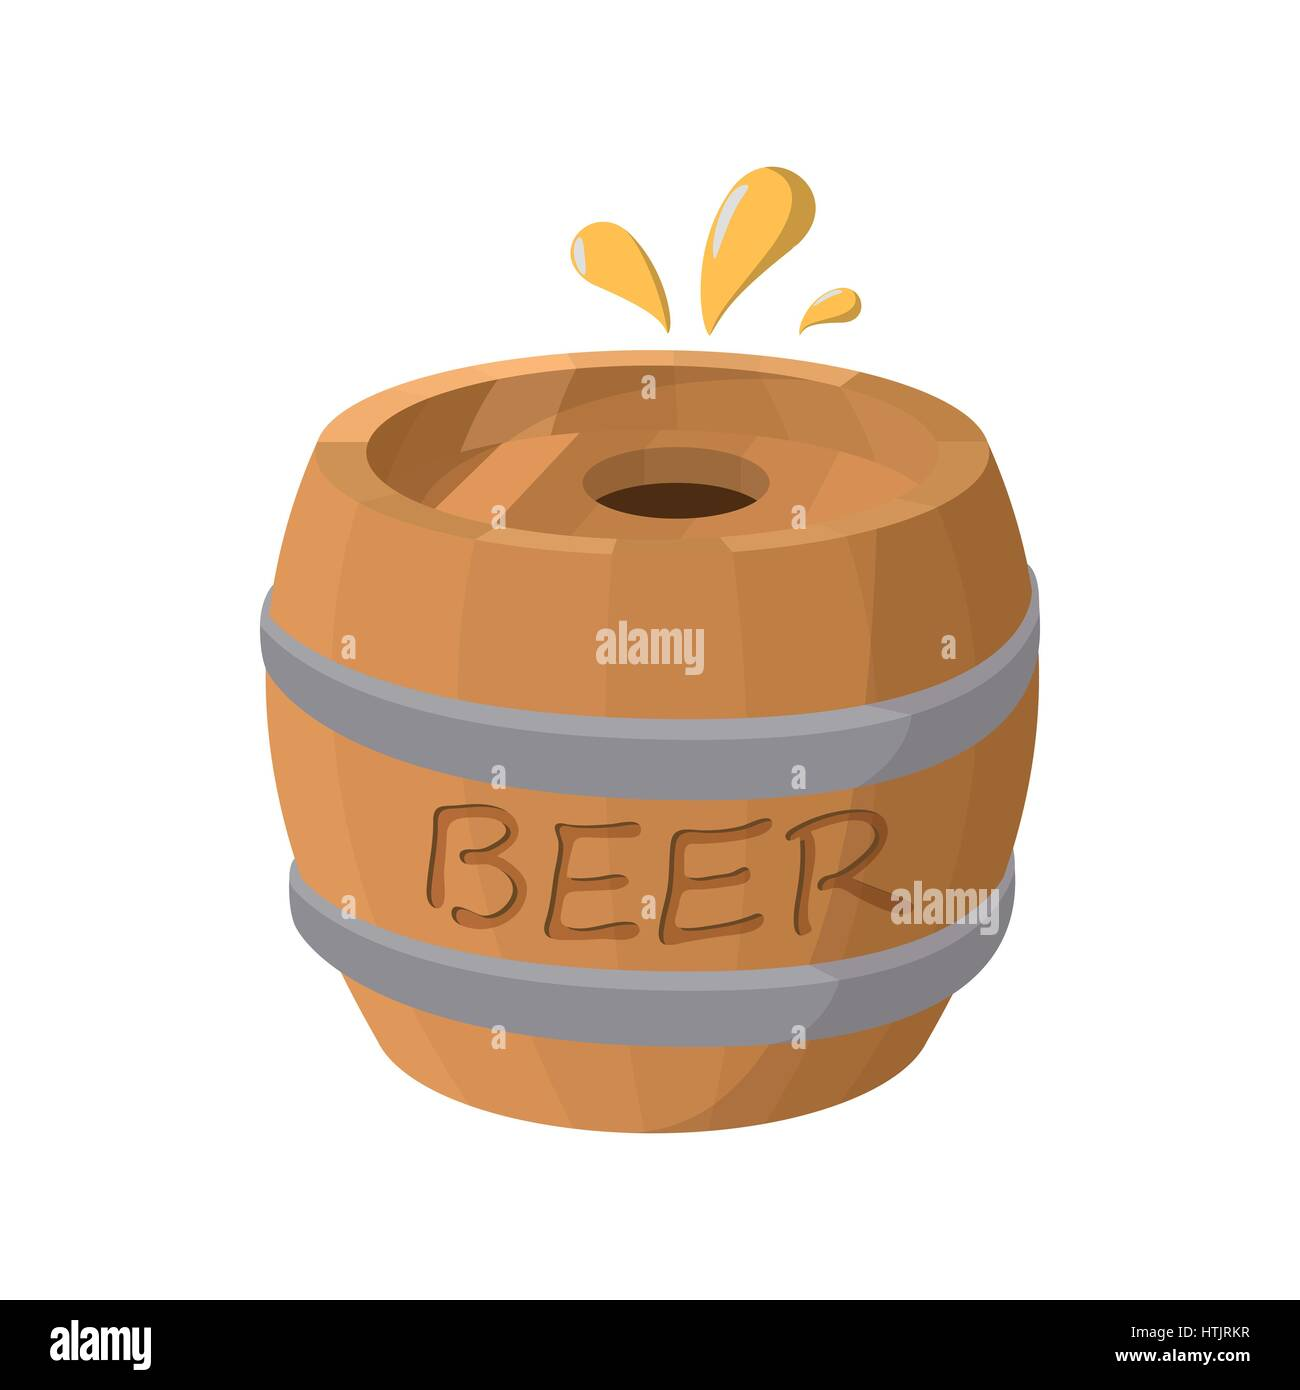 how to open a barrel of beer